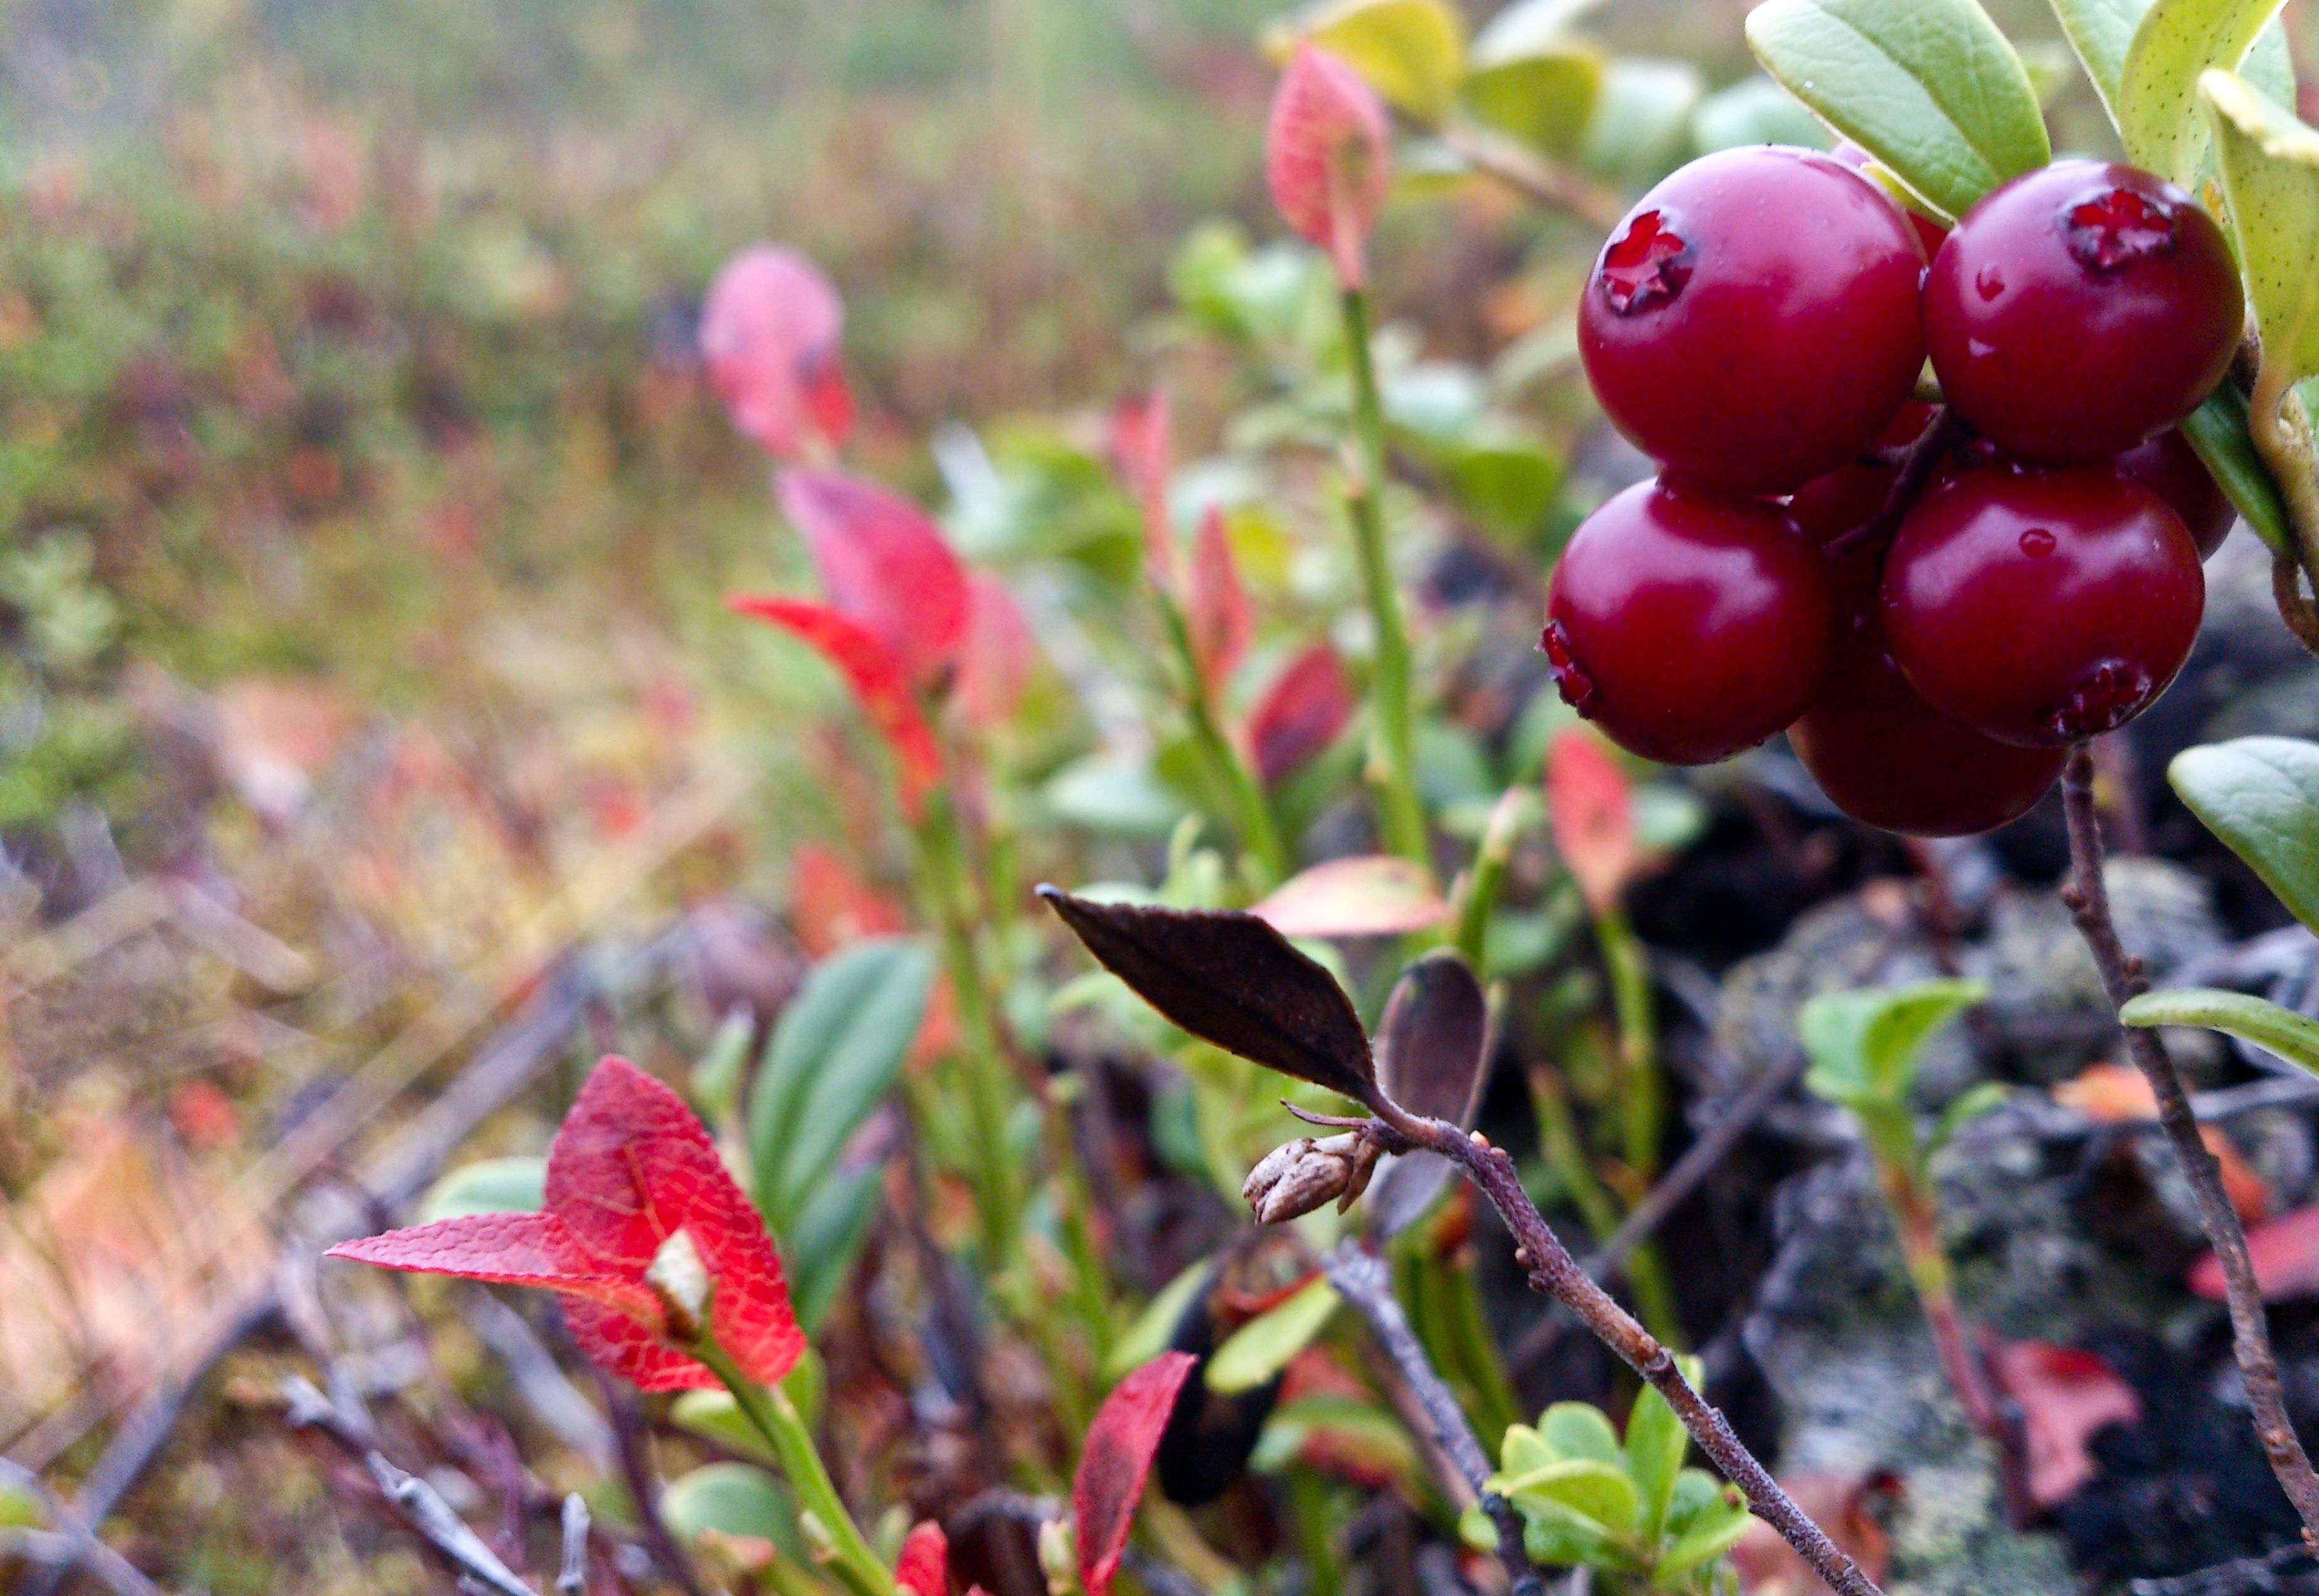 Lingon- berry, pick them in autumn and make fresh jam out of them! #SwedishLapland #womentravel #lingon #berries #8seasons4women http://www.8seasons4women.com/ruska-indian-summer-in-lapland/